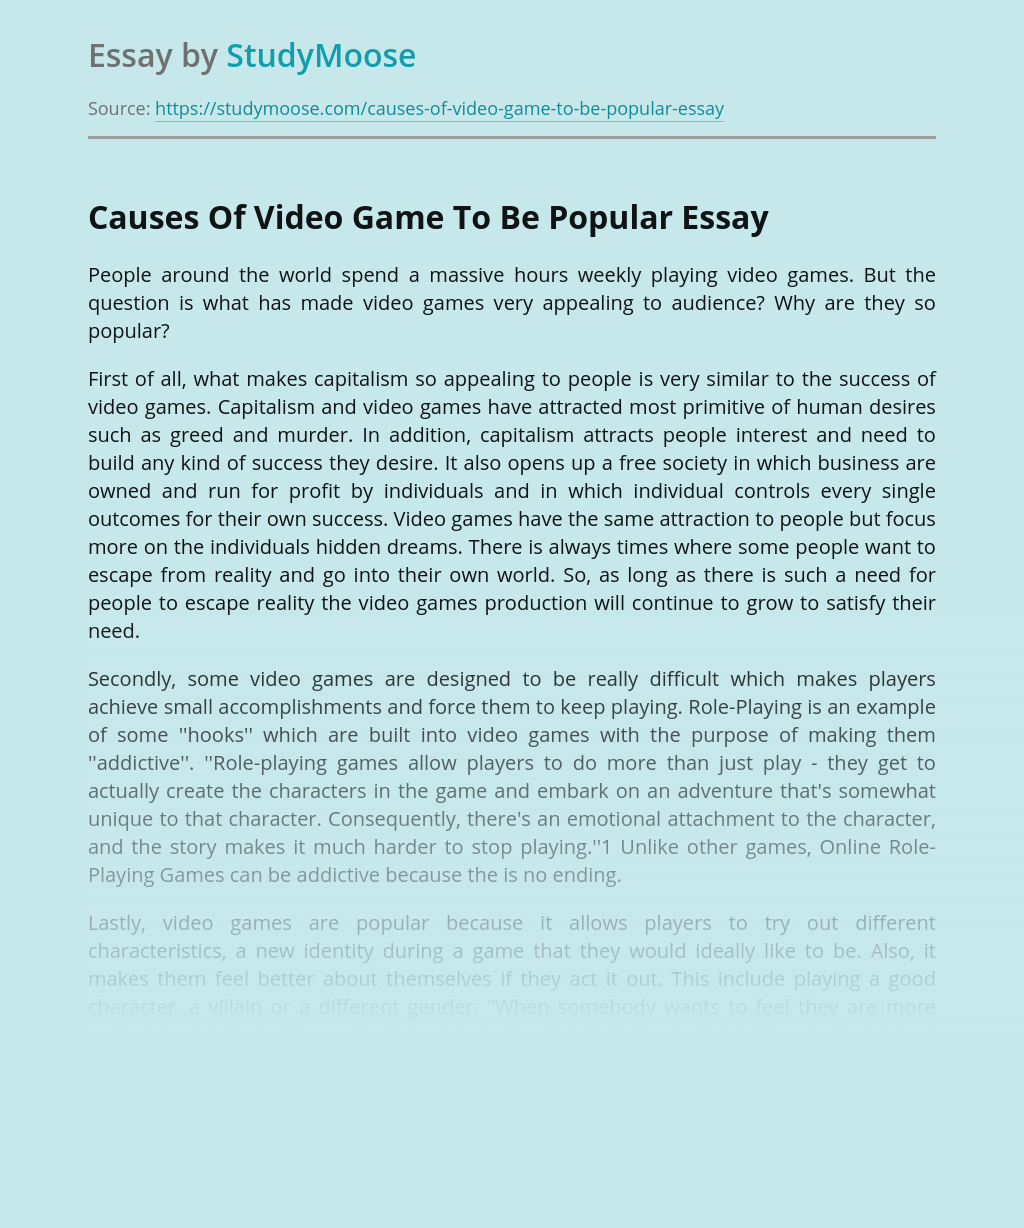 Causes Of Video Games To Be Popular